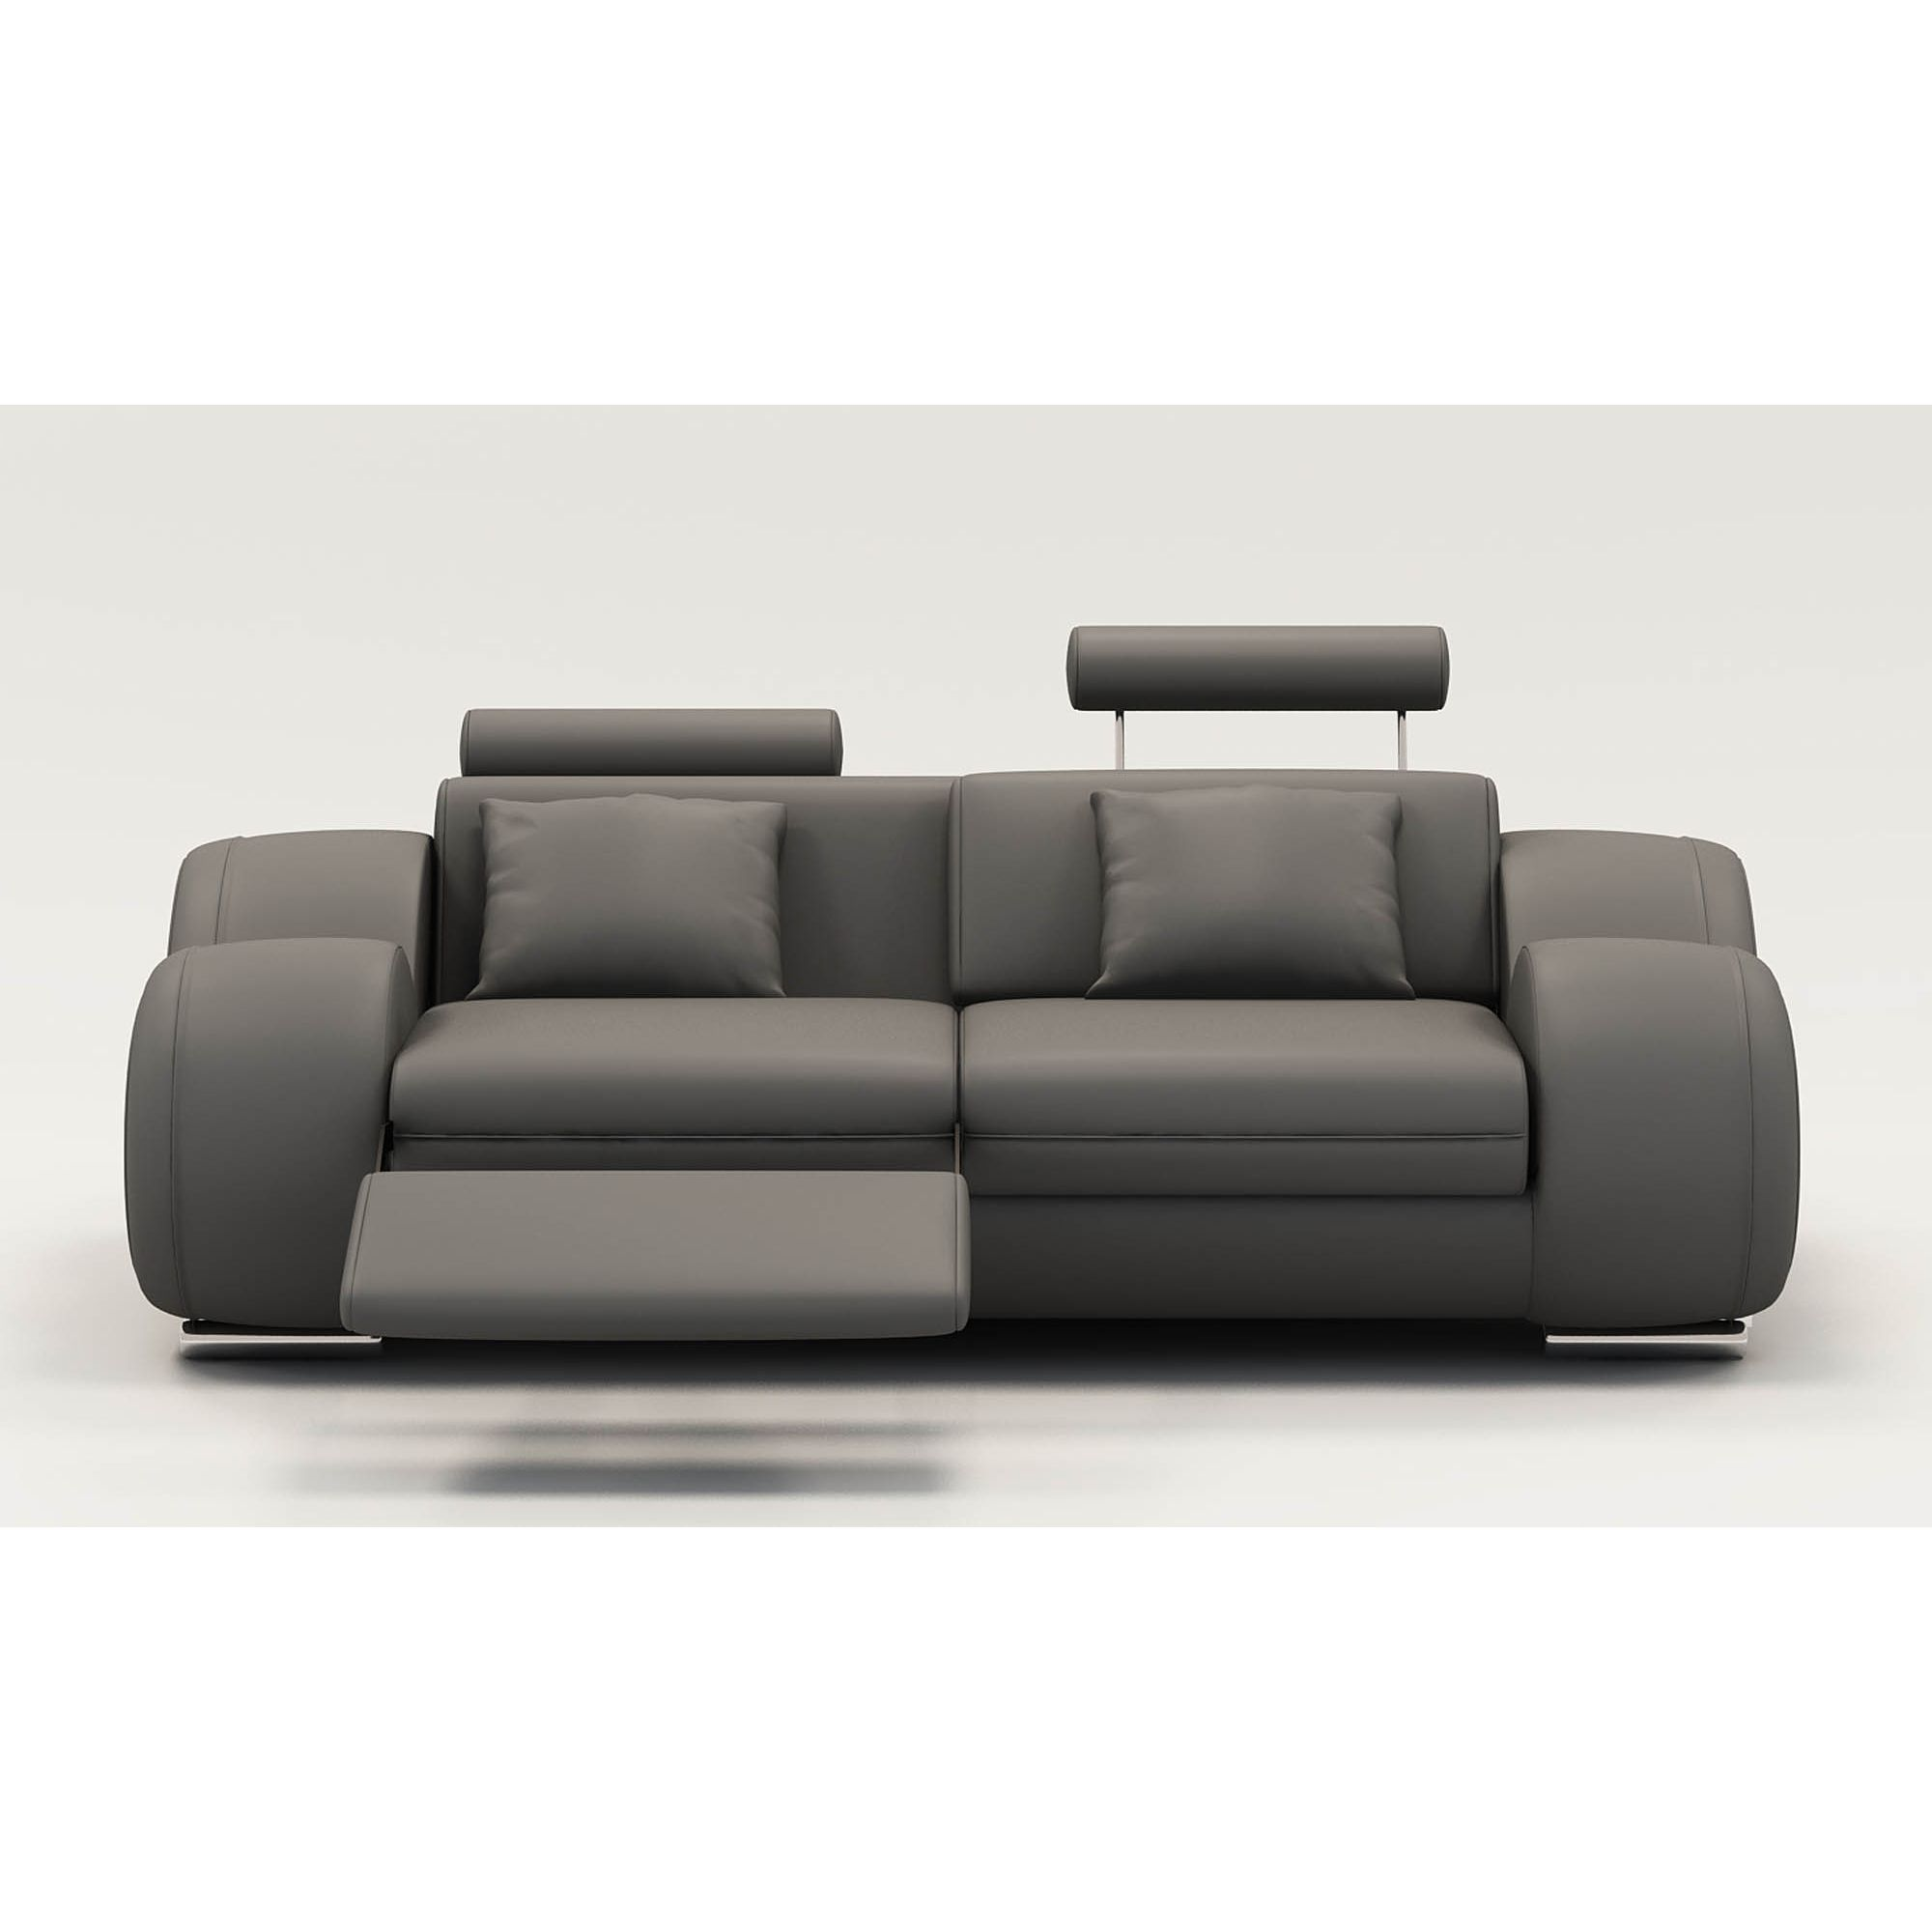 Deco in paris 3 ensemble cuir relax oslo 3 2 1 places - Canape cuir relaxation ...